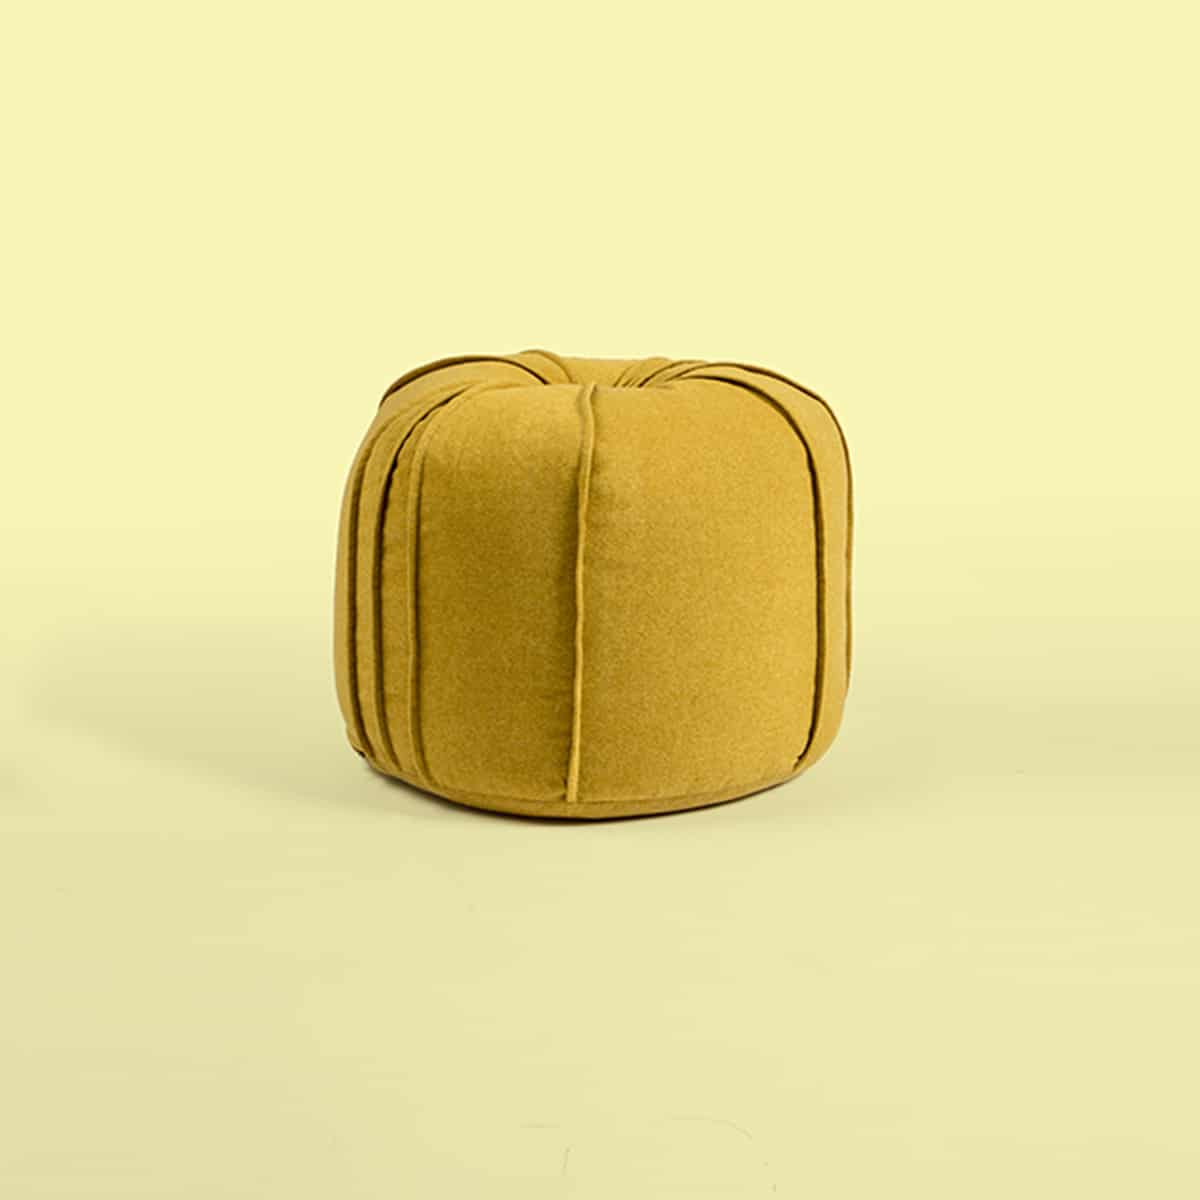 pouf eliot the elegant saintesprit jaune zeeloft 1